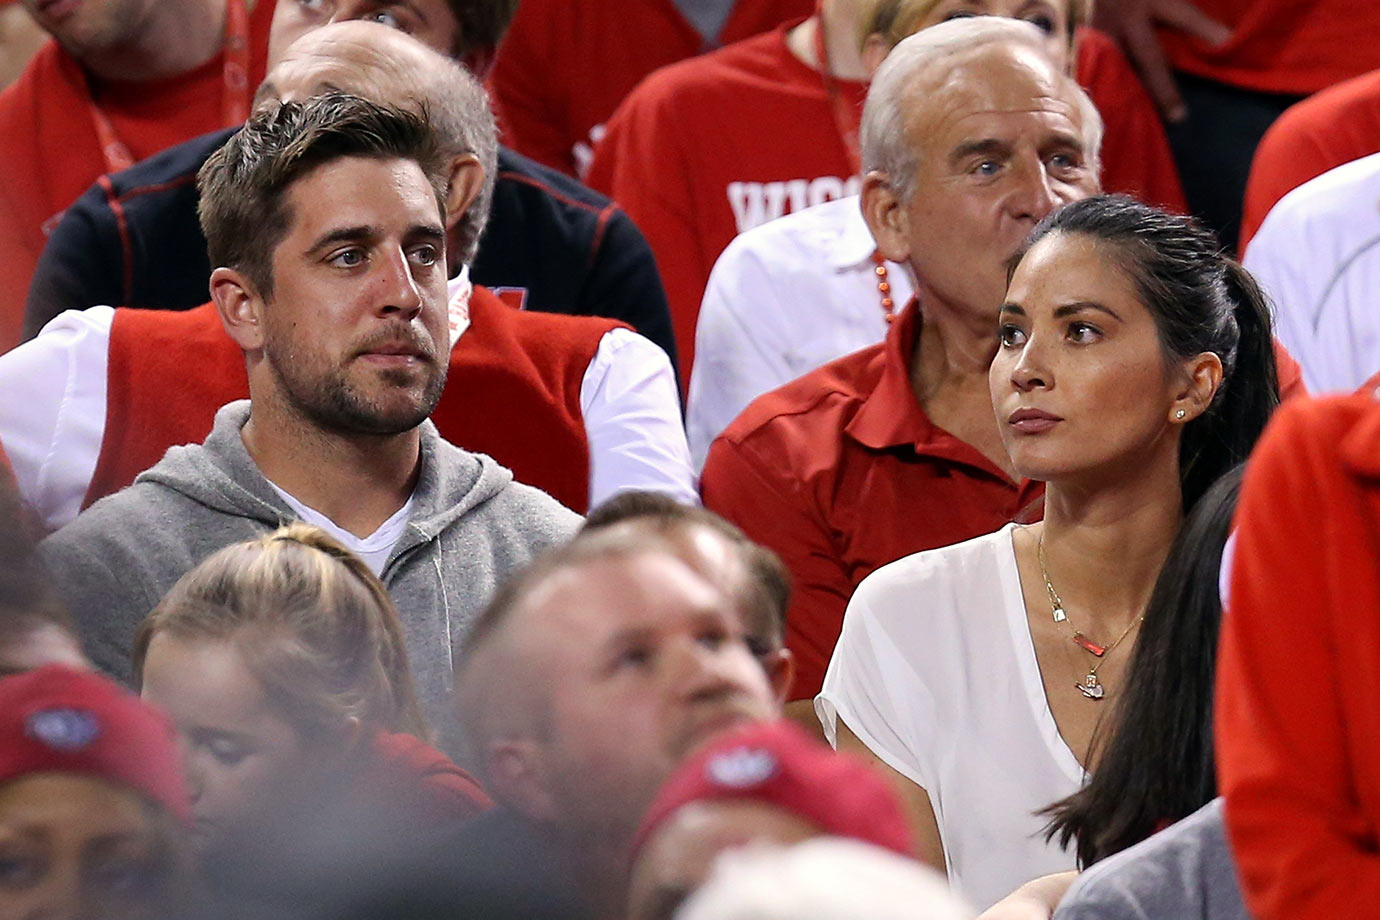 Aaron Rodgers and Olivia Munn attend the NCAA Men's National Championship Final Four game between the Wisconsin Badgers and the Duke Blue Devils at Lucas Oil Stadium on April 6, 2015 in Indianapolis.